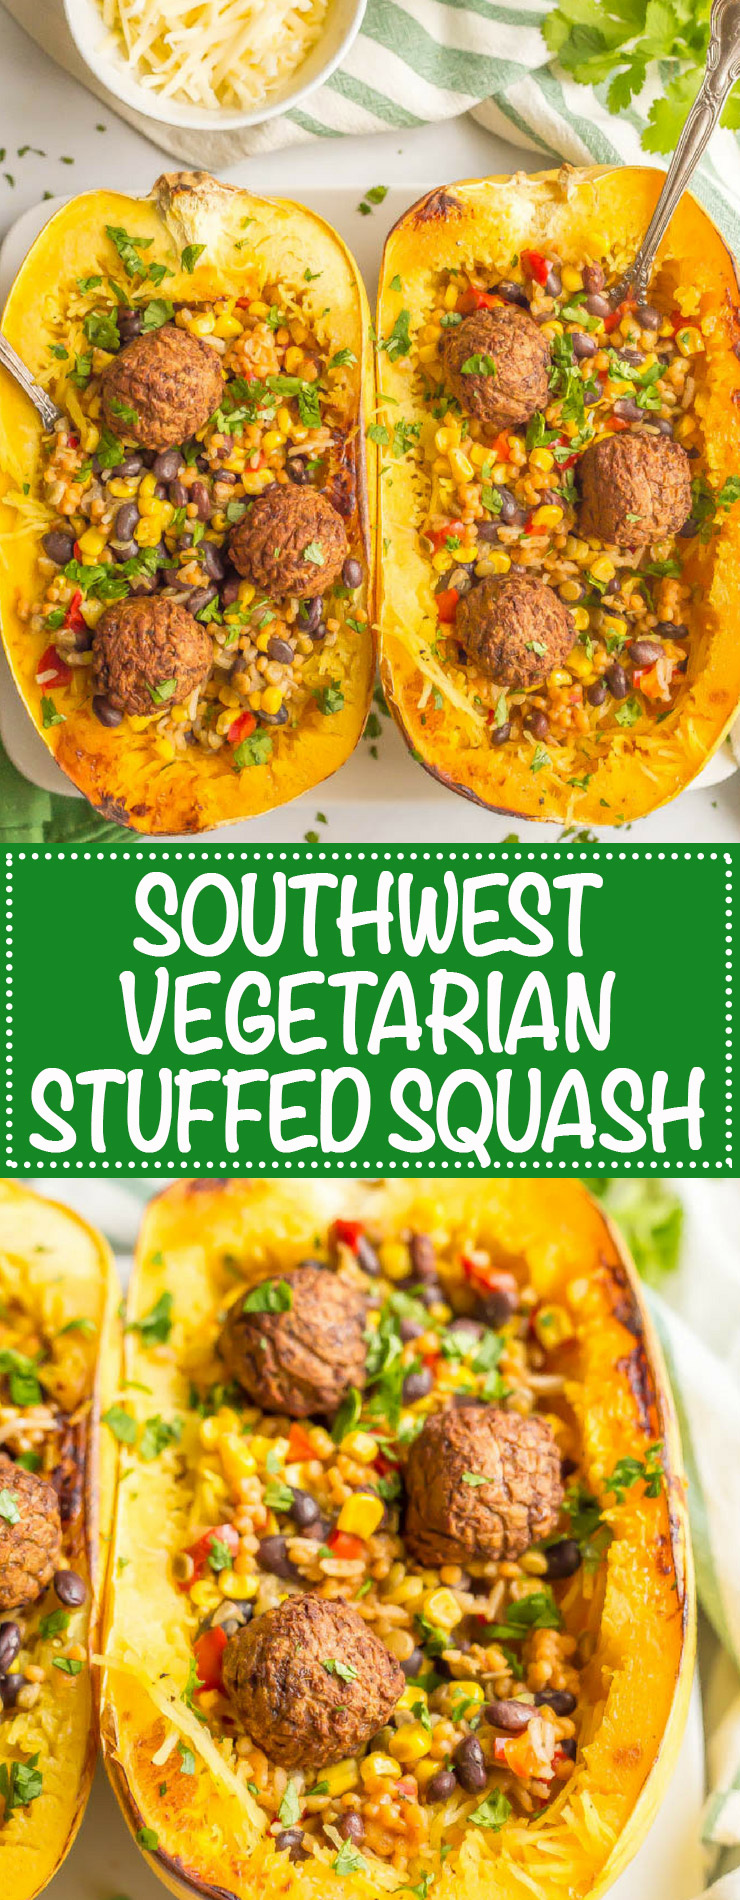 Southwest vegetarian stuffed spaghetti squash is a hearty and satisfying plant-based recipe with great flavor and textures. Add your favorite toppings and dig into this delicious dinner! #vegetarian #stuffedsquash #plantbasedrecipe | www.familyfoodonthetable.com